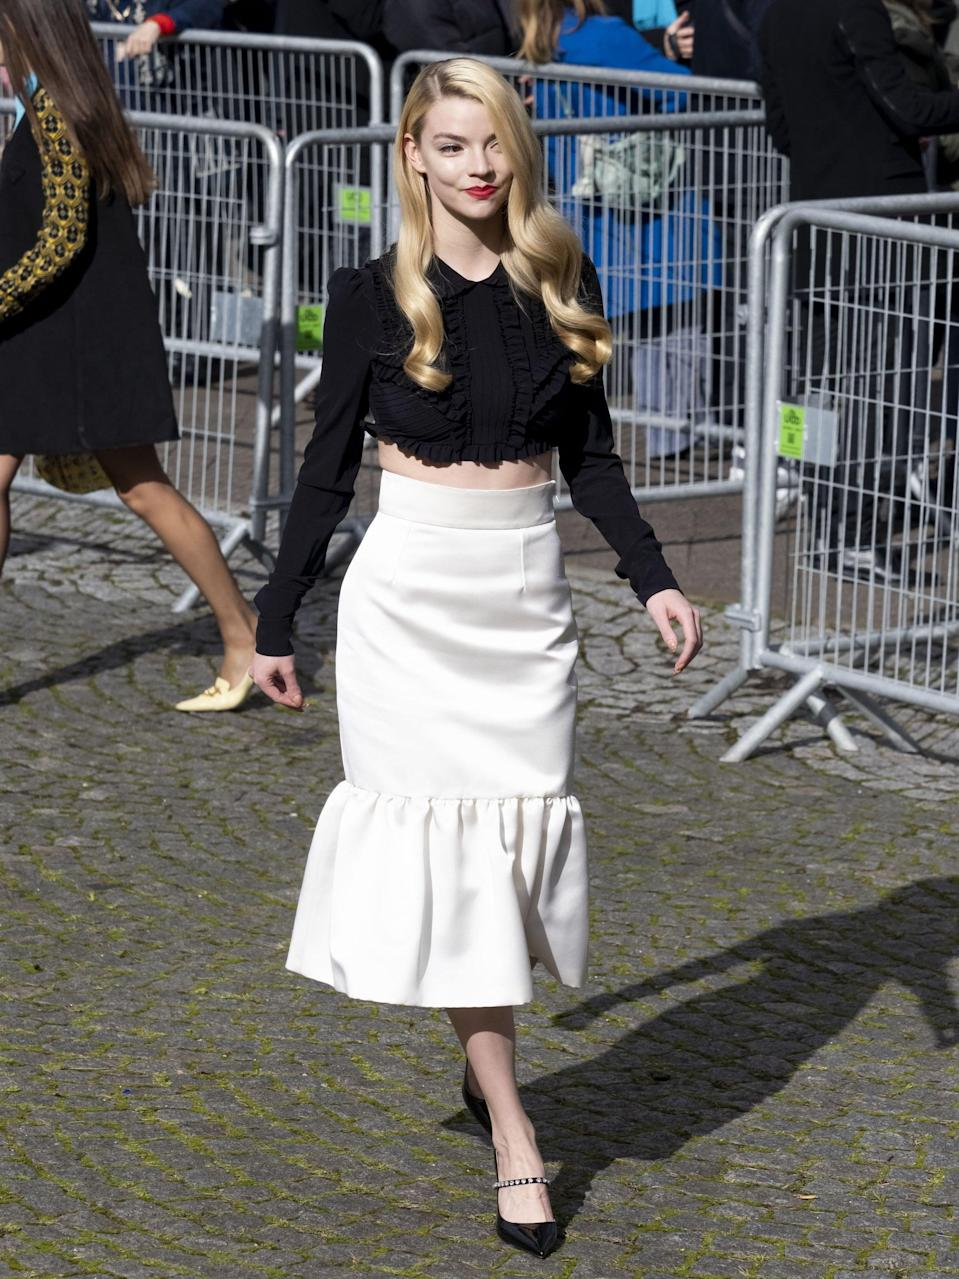 <p>Anya was spotted during Paris Fashion Week's fall 2021 season in head-to-toe Miu Miu outside of the show. She teamed a Victorian-inspired crop top with a fluted skirt and embellished patent pumps.</p>